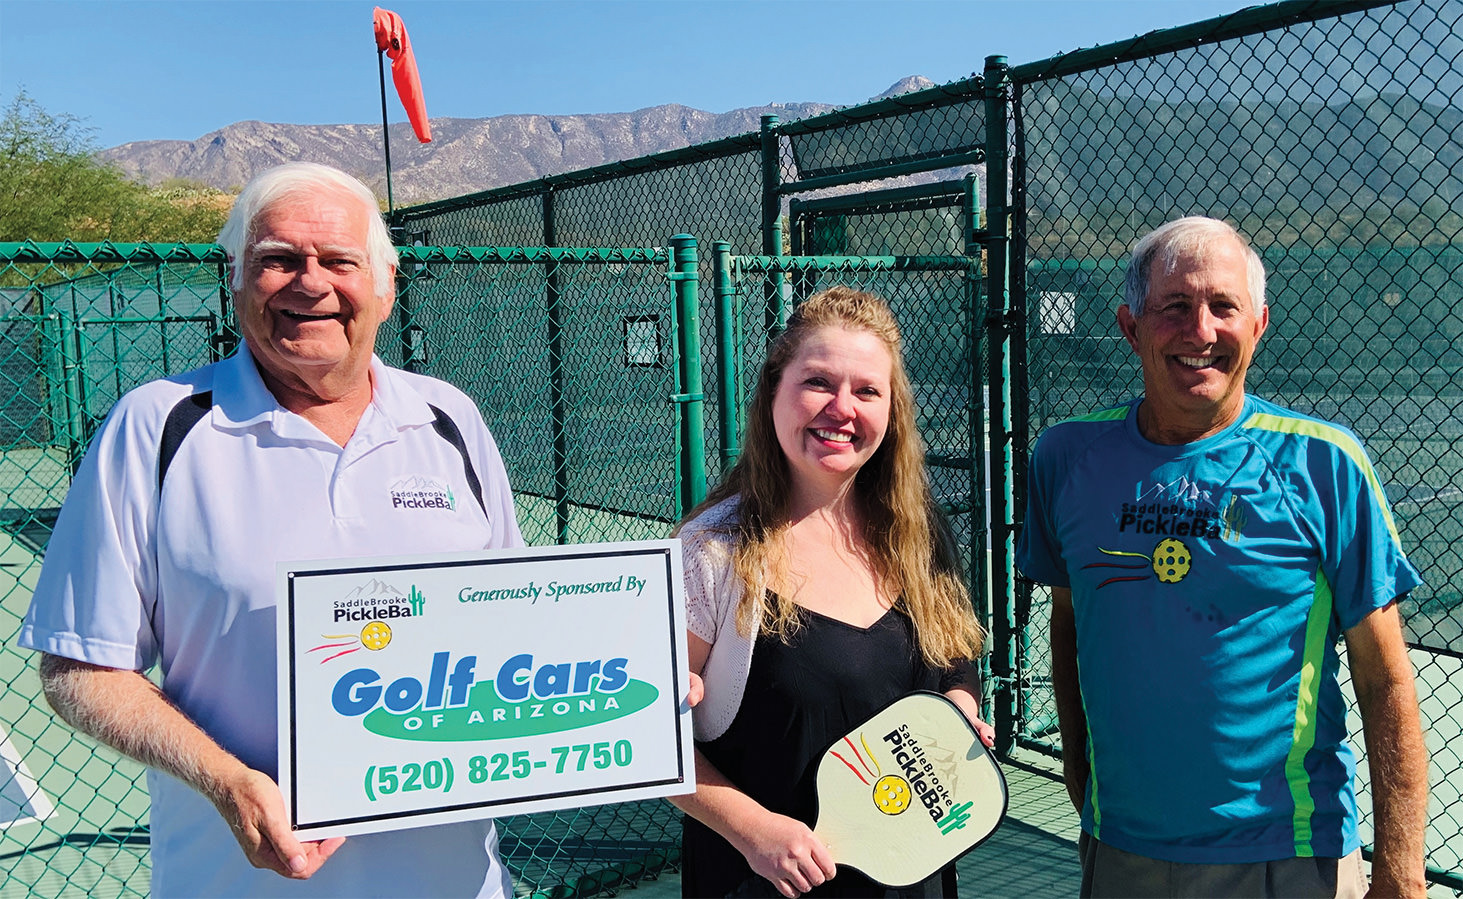 SPA co-chair of the fundraising committee, Jim Schlote; Golf Cars of Arizona Service Manager, Allison Honeycutt; SPA President, Peter Giljohann